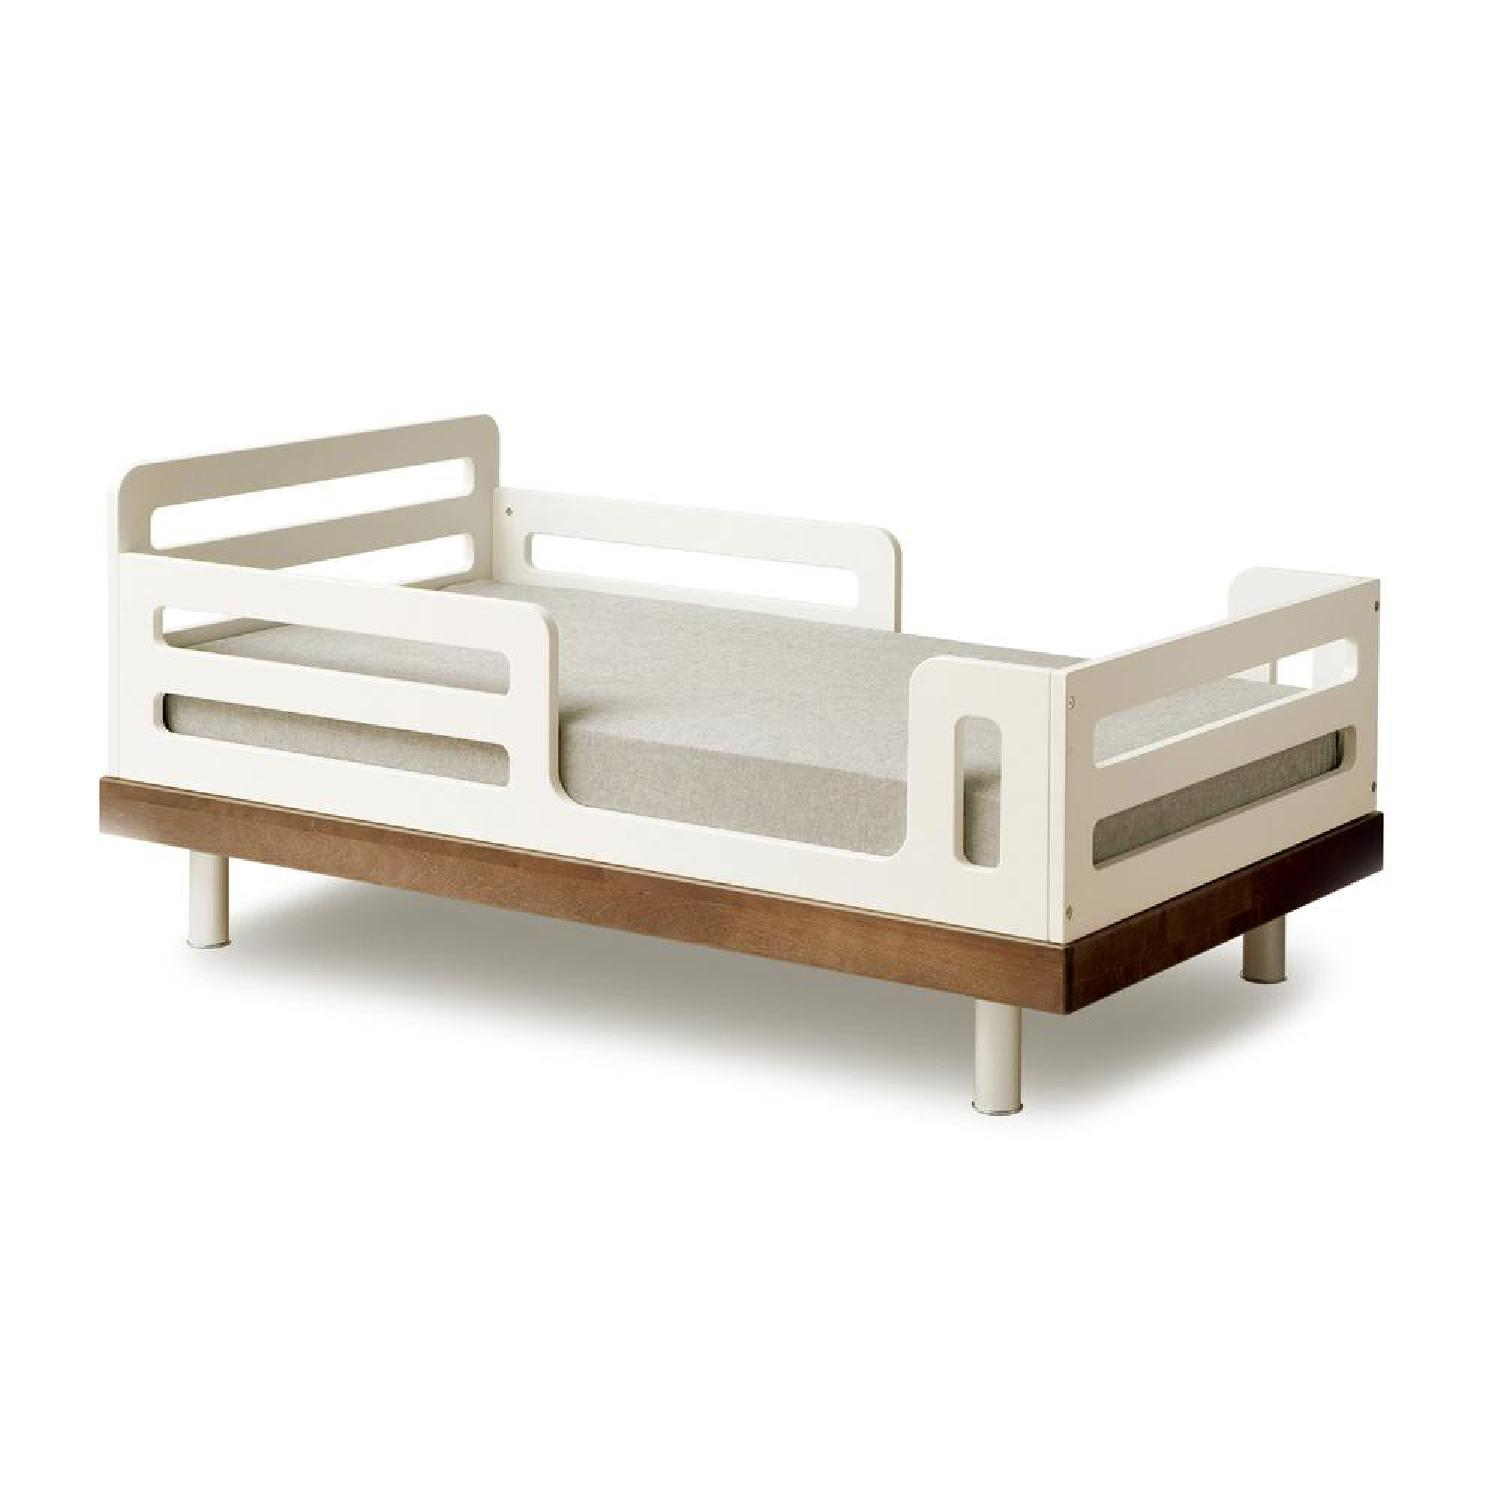 Oeuf Classic Toddler Bed - image-7